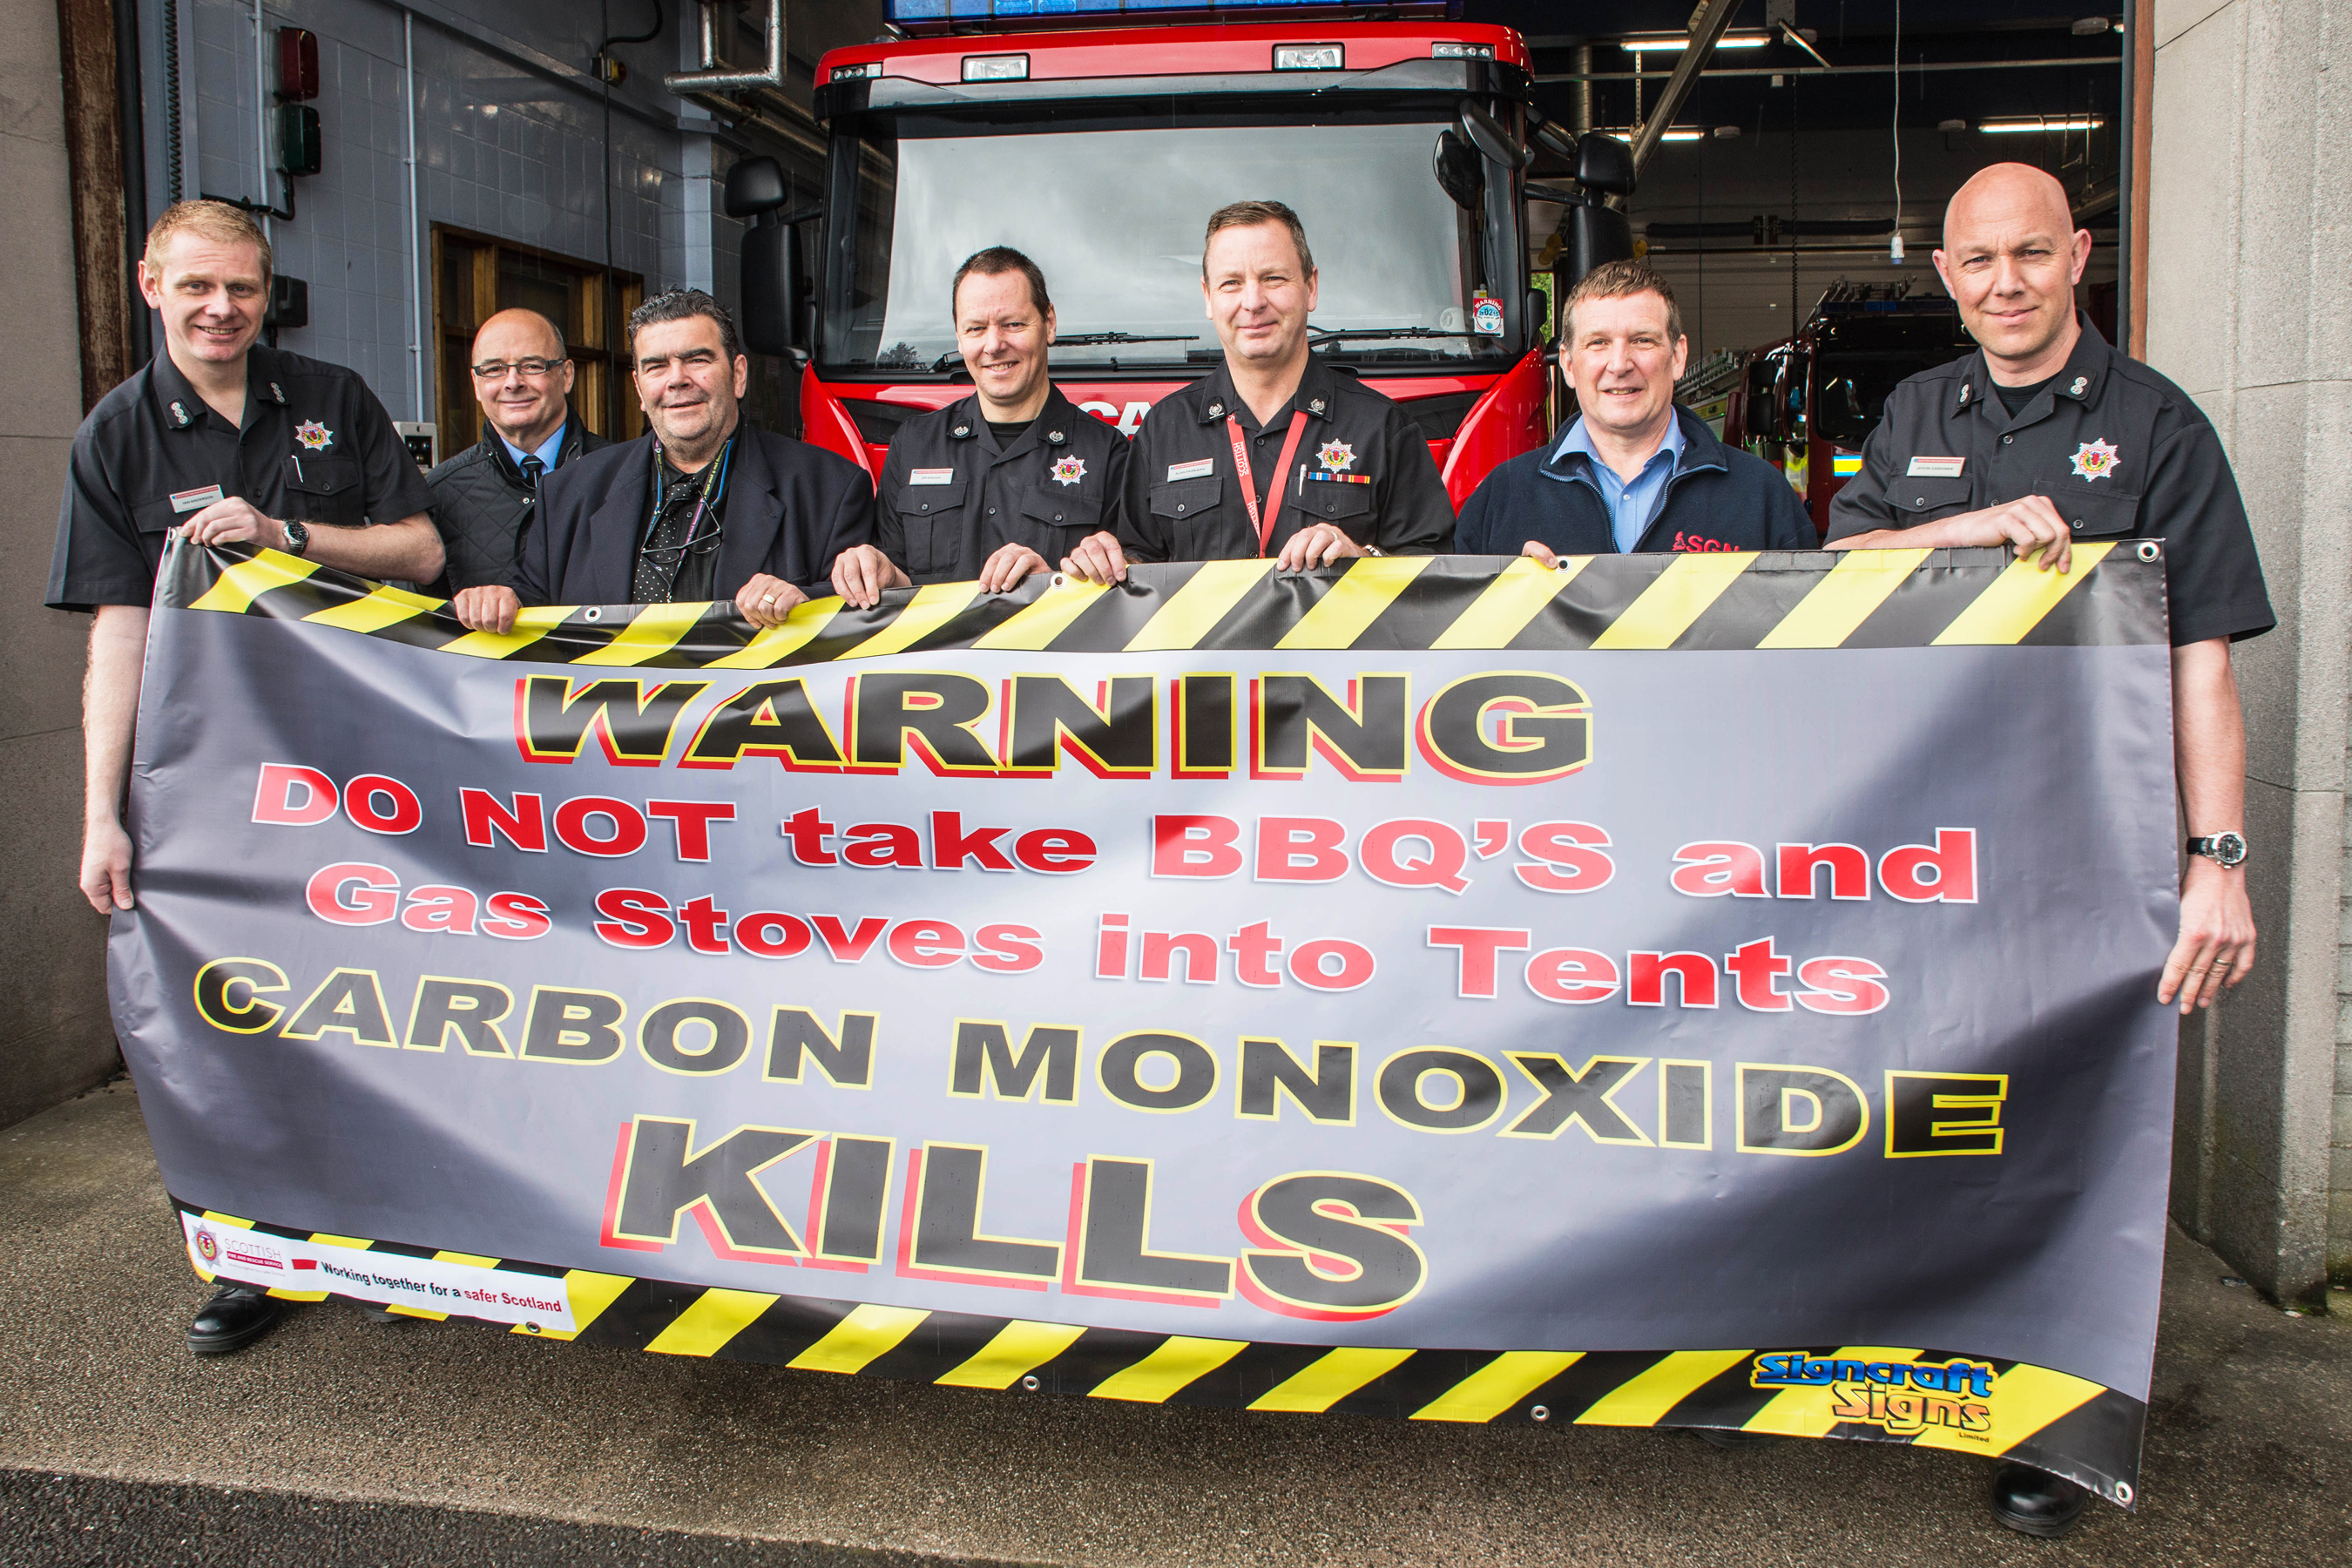 Protect Dumfries and Galloway from carbon monoxide tragedy